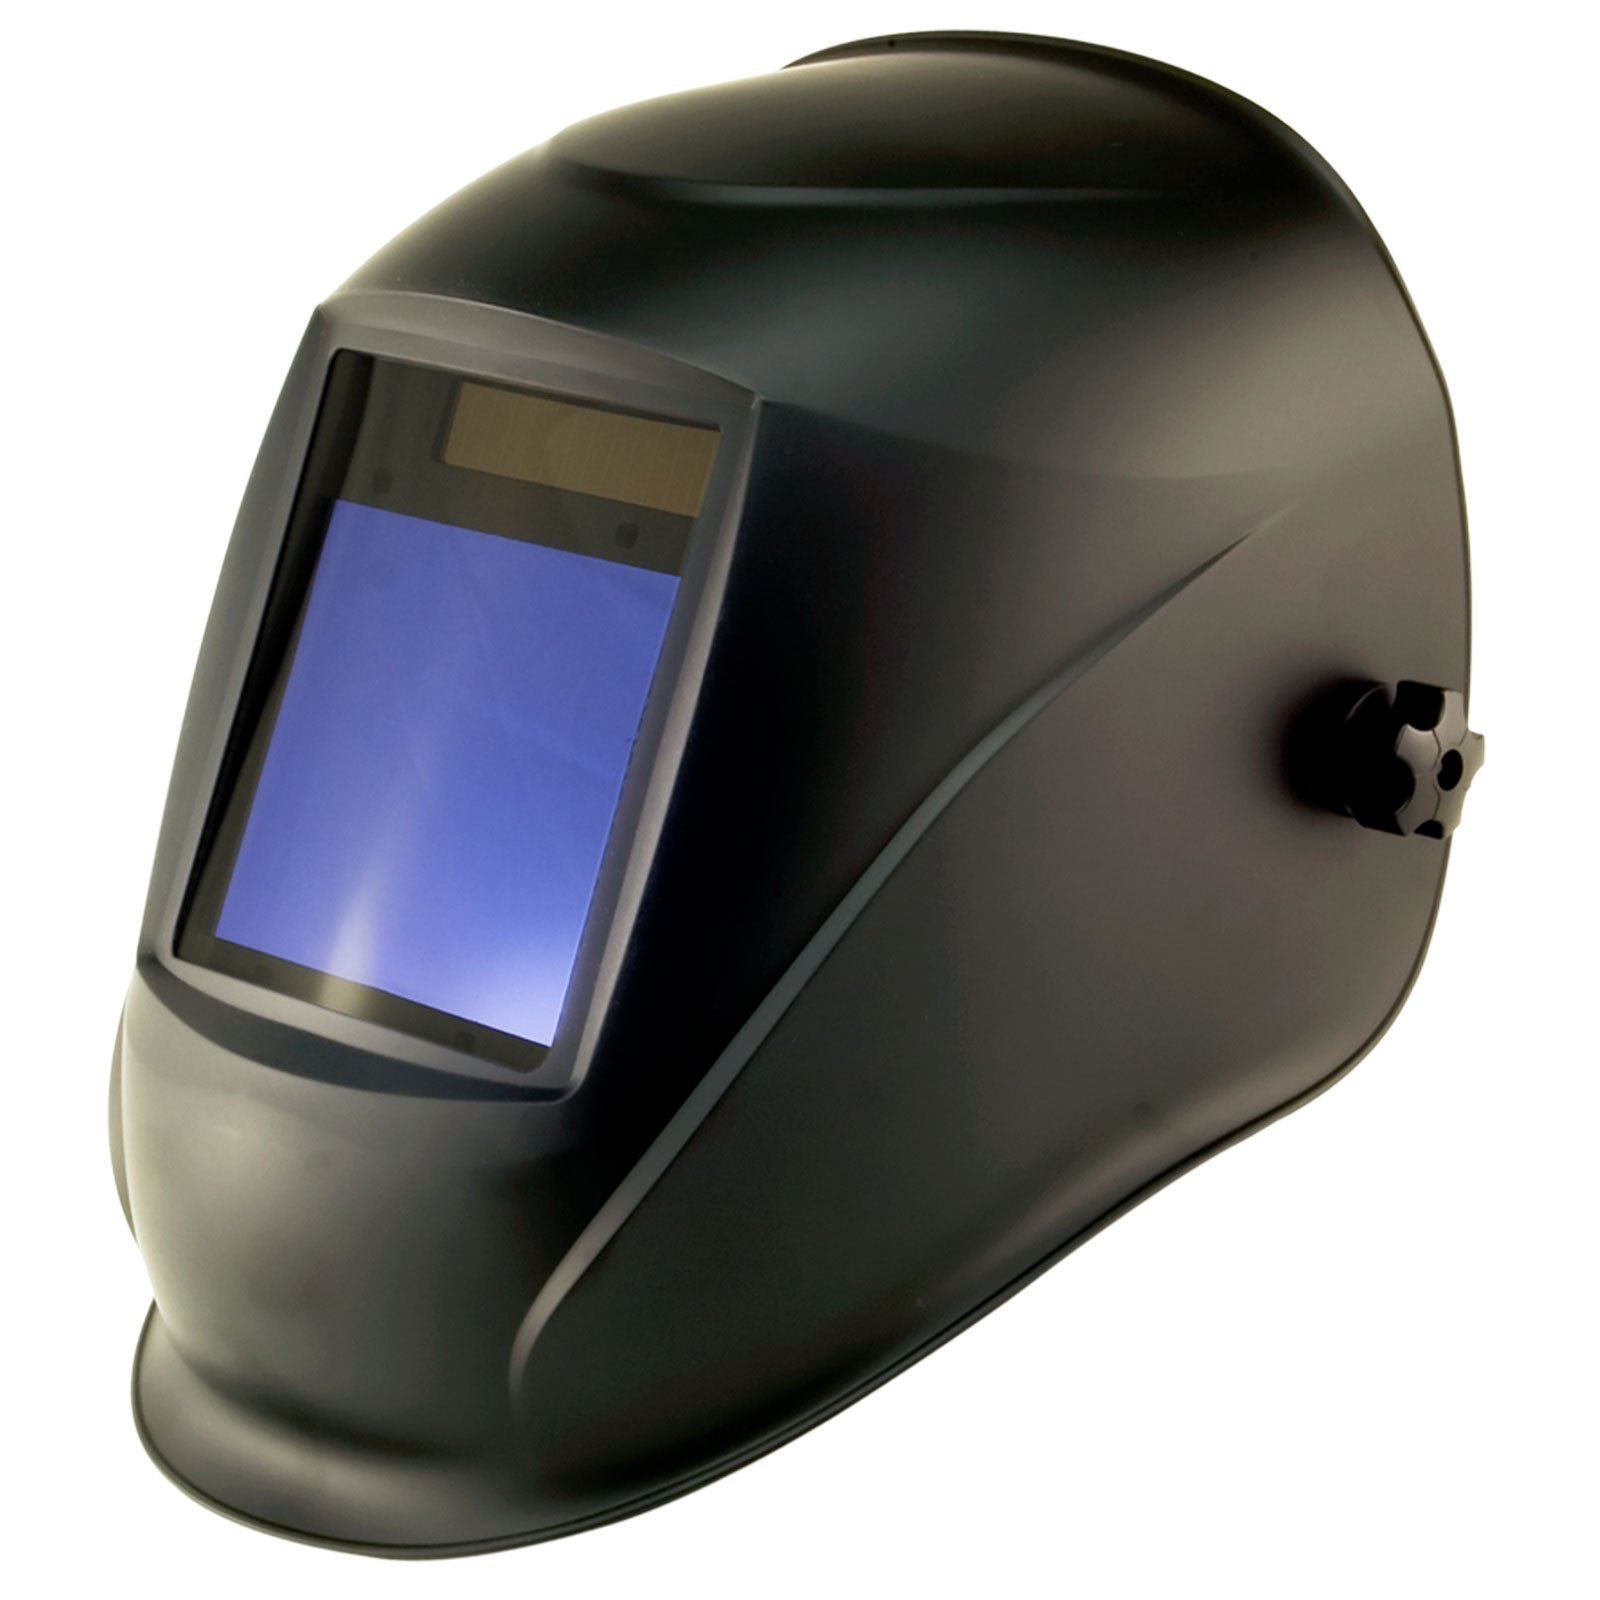 True-Fusion Big-1 Shadow IQ2000 Solar Powered Auto Darkening Welding Helmet Hood Grind mask with Massive View Area (98mm x 87mm - 3.85x3.45 inches) FREE Storage Bag, Spare Lenses and Spare Sweatband included